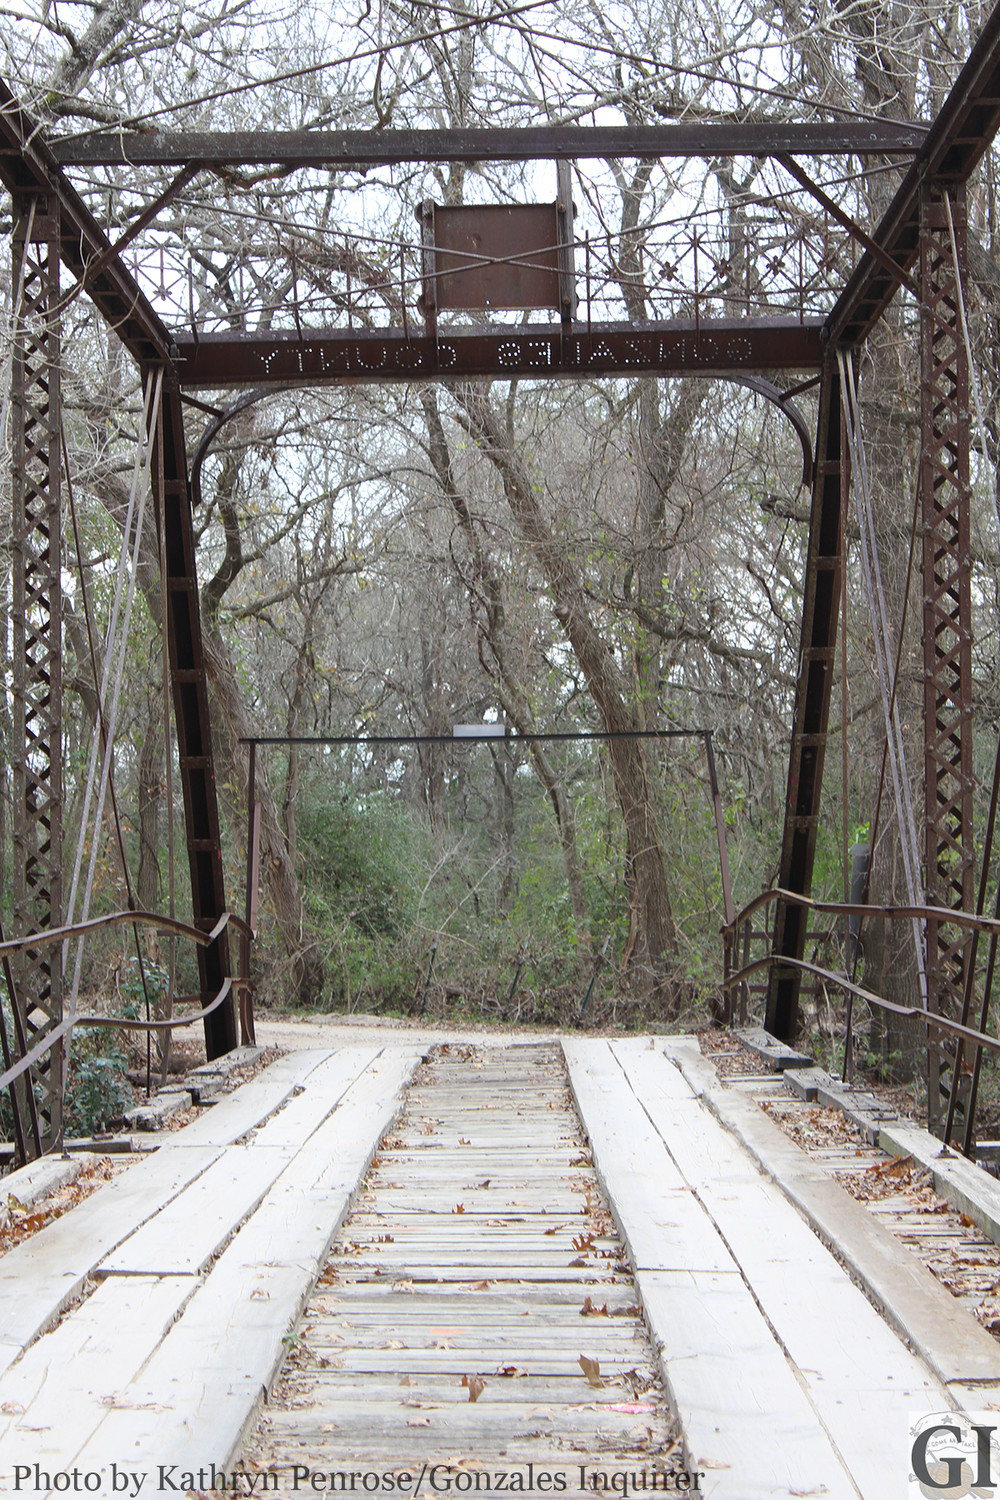 County commissioners wanted to make sure history was preserved and after hearing a plan on Monday, they were reassured that the Peach Creek Bridge will indeed be handled with care during repairs, instead of an all-out replacement.